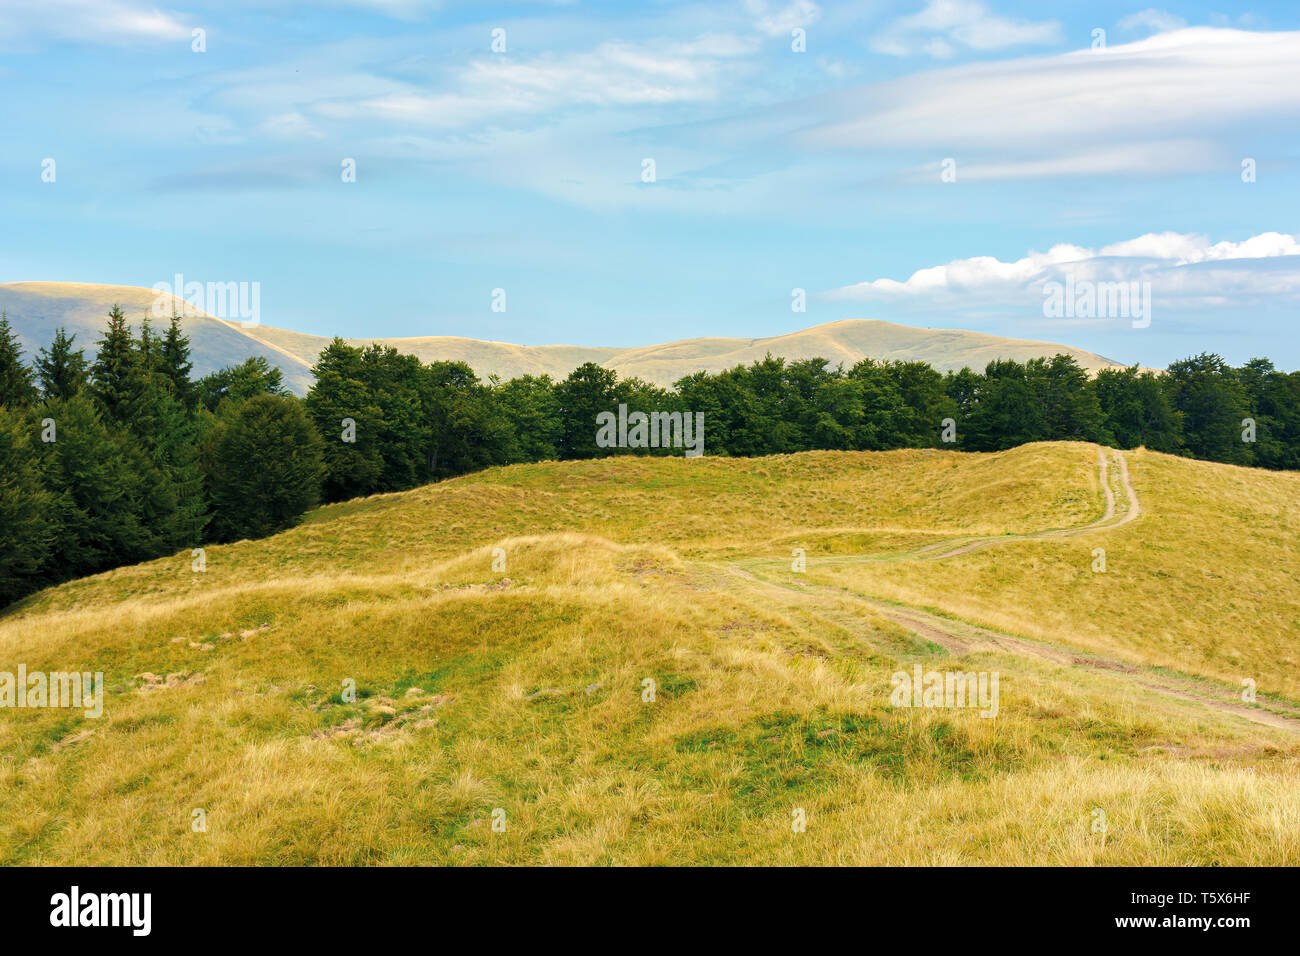 carpathian sub alpine meadows in august. beautiful mountain landscape. road winding in to the distance. primeval beech forest on the edge of a hill. s - Stock Image